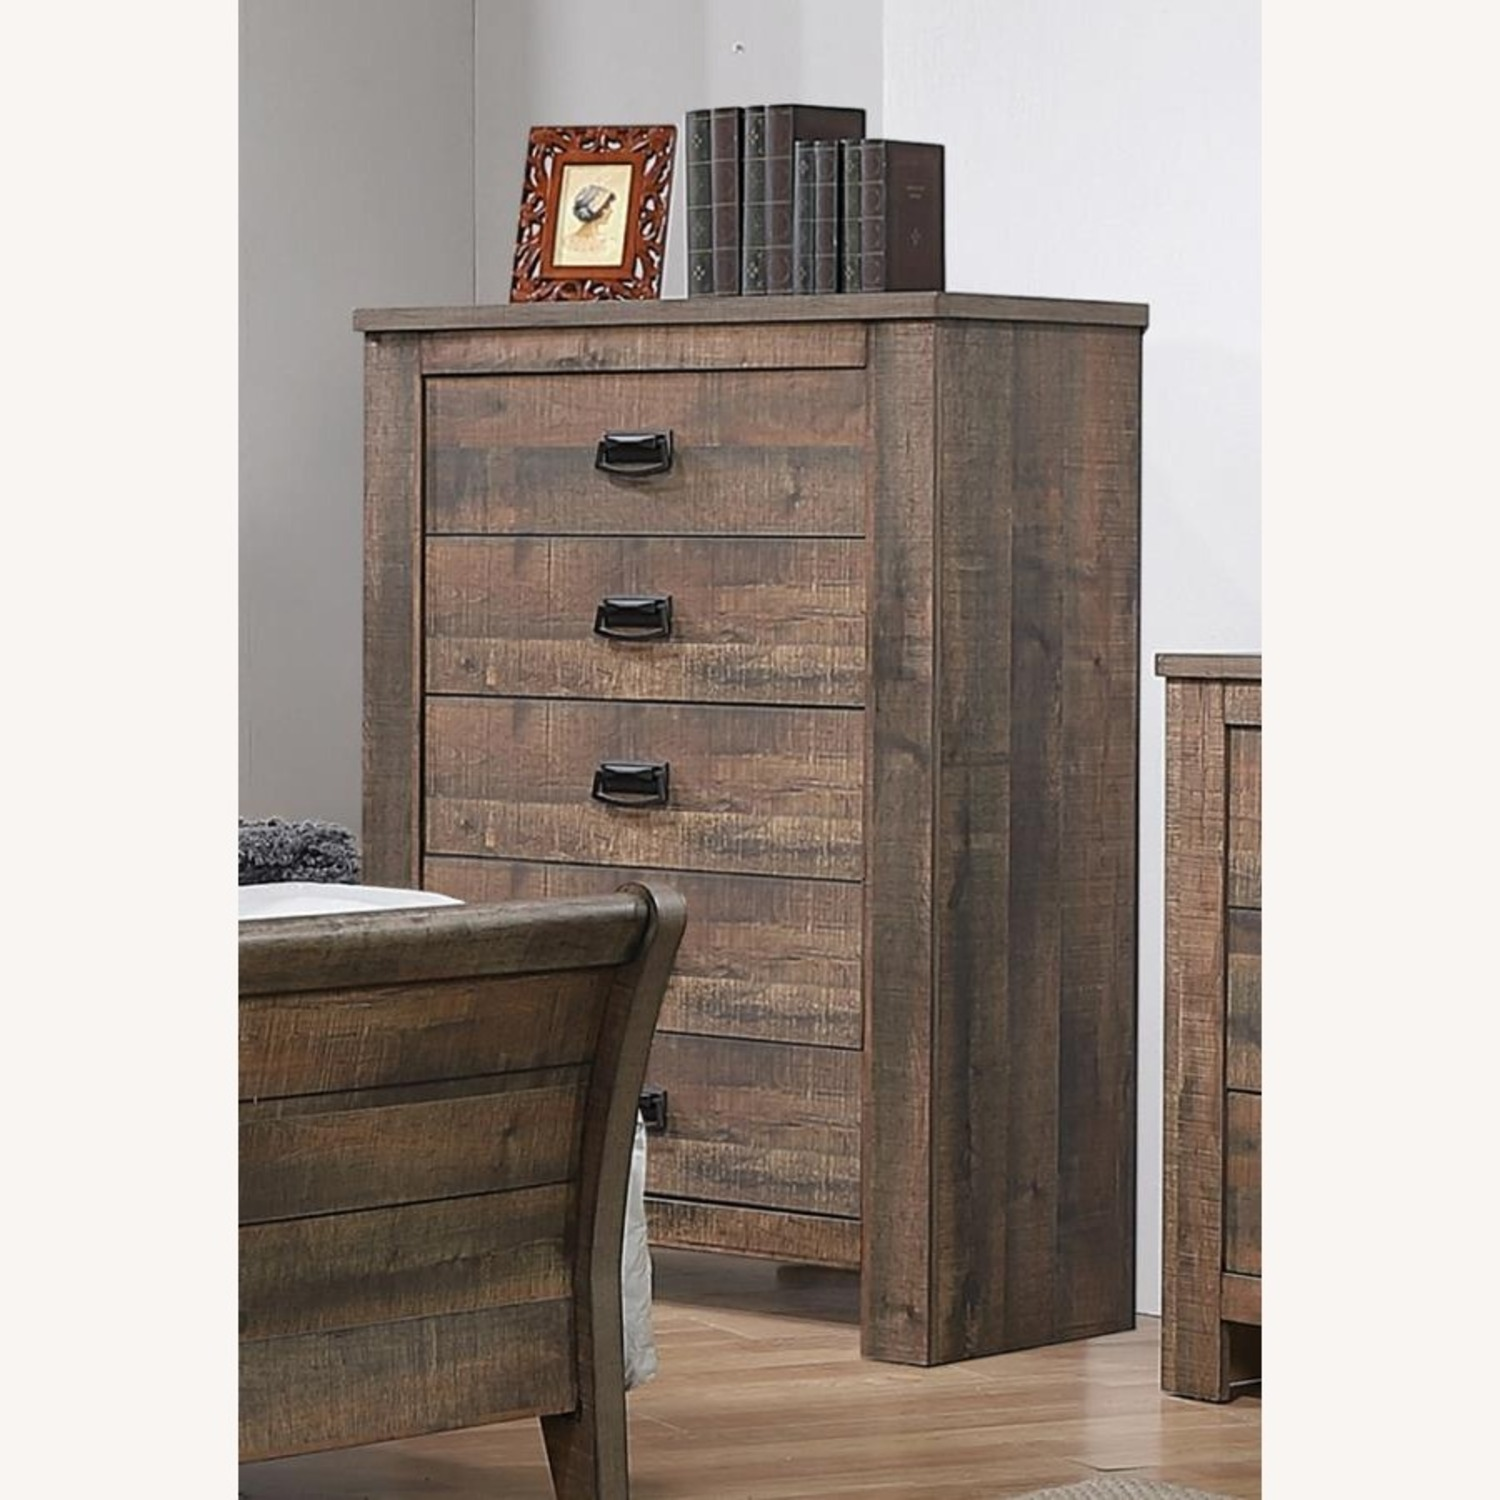 Chest In Weathered Oak Finish W/ Bail Handle - image-1